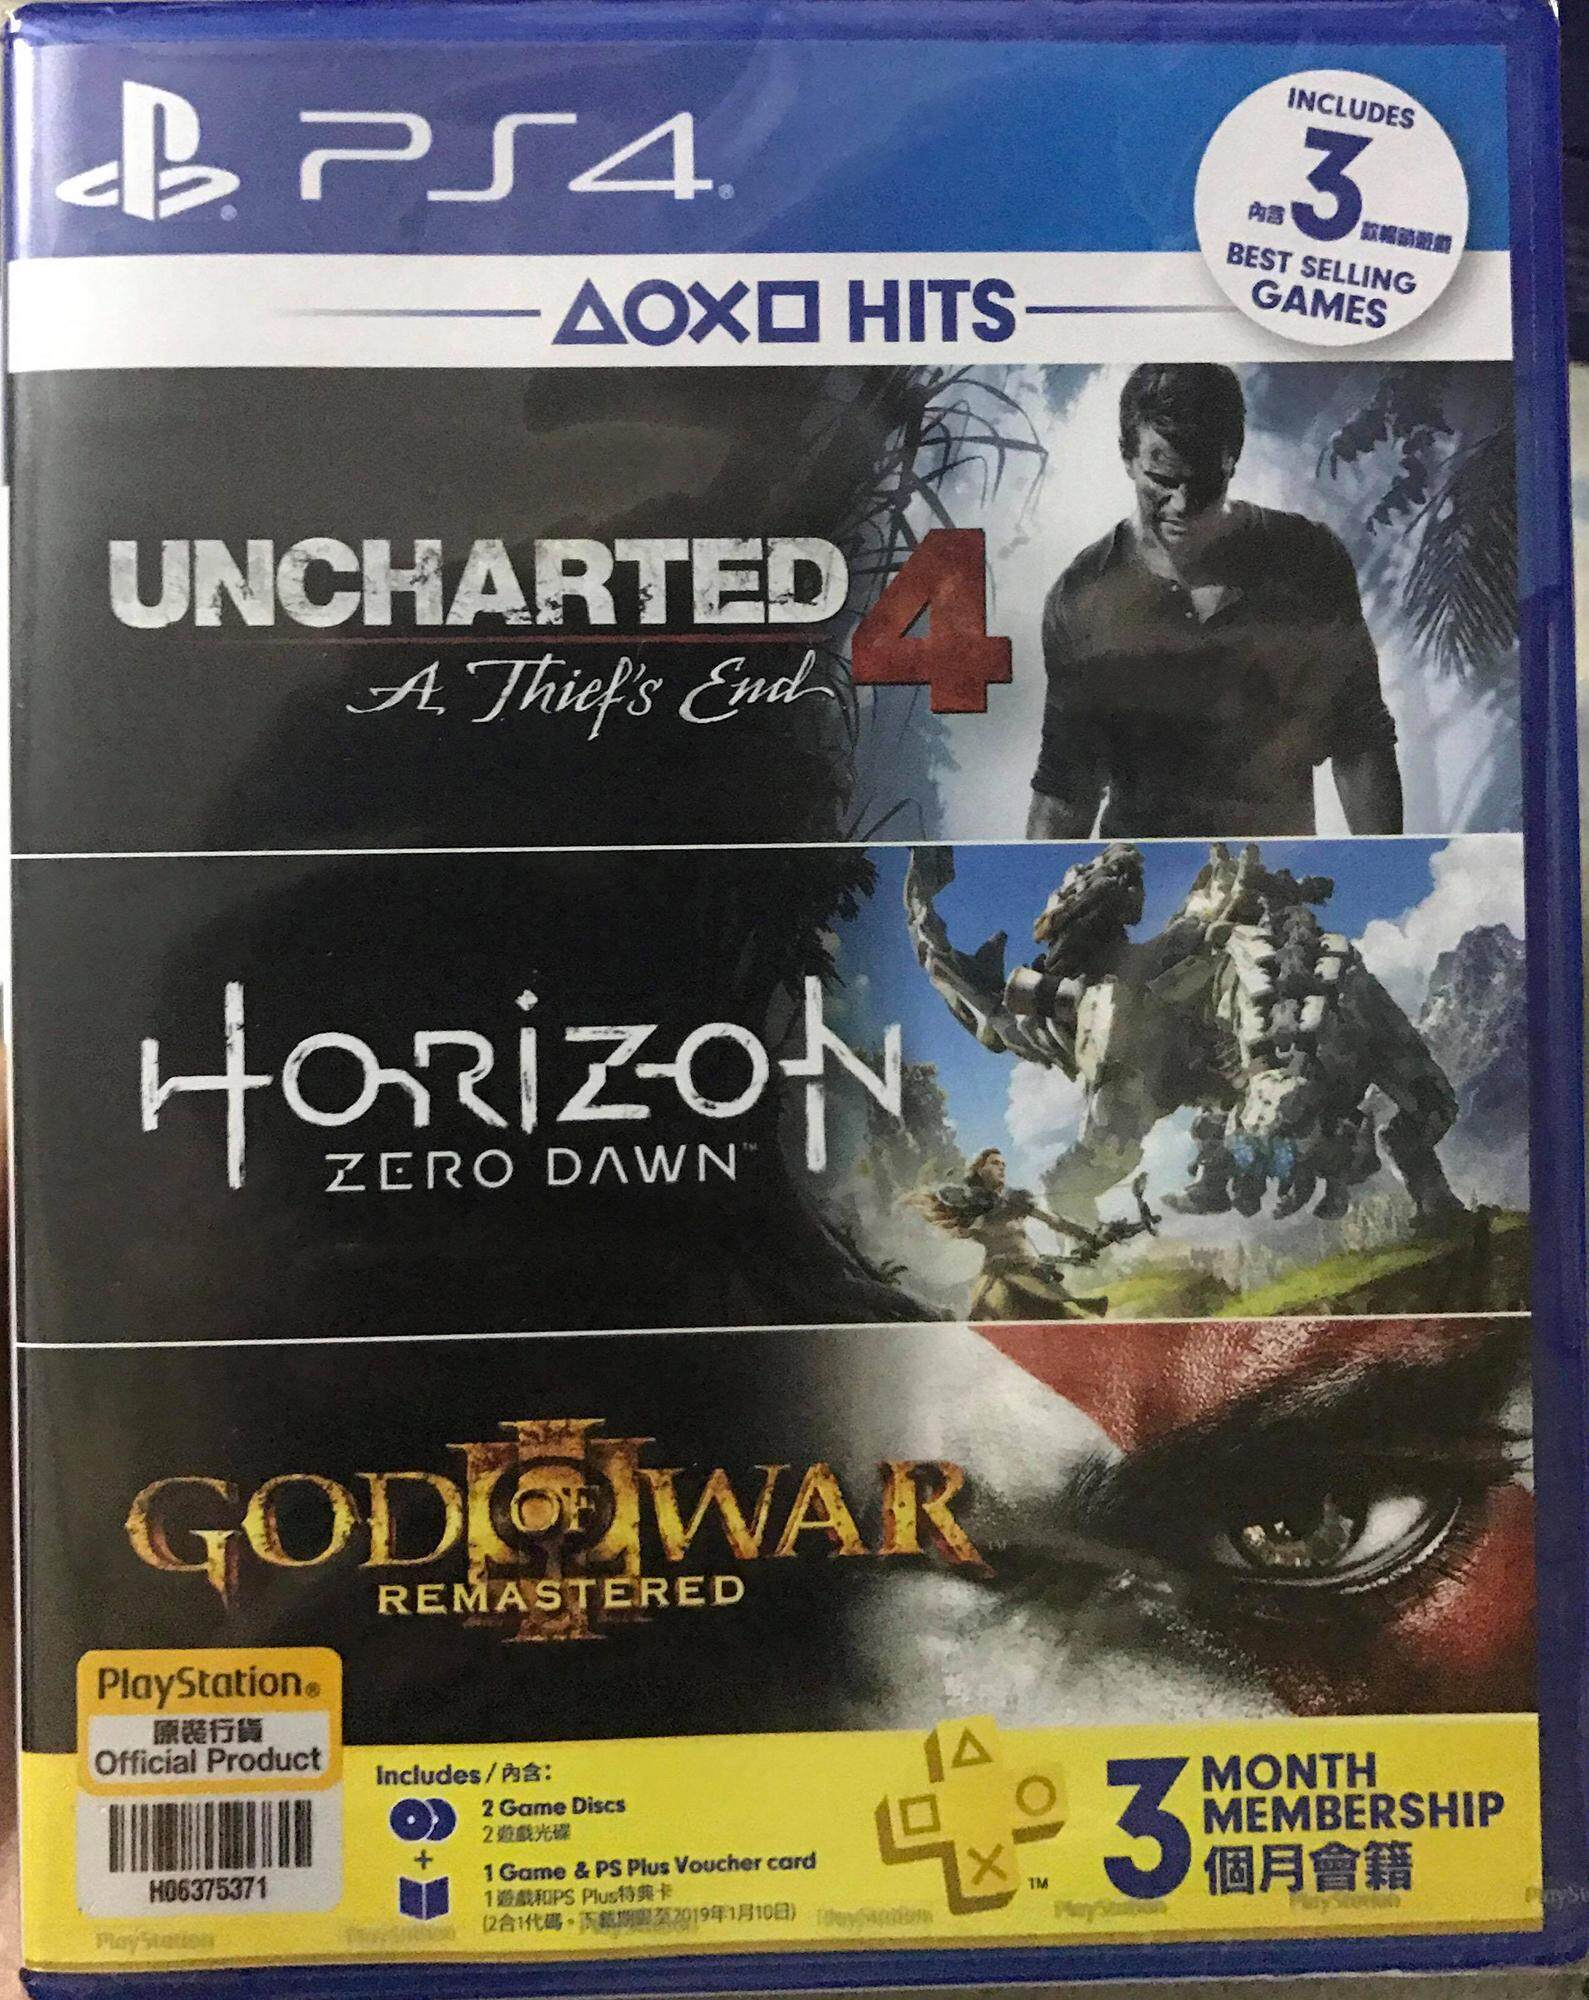 PS4 HIT UNCHARTED 4 TRIPLE PACK / HORIZON / GOD OF WAR III (ALL ZONE)